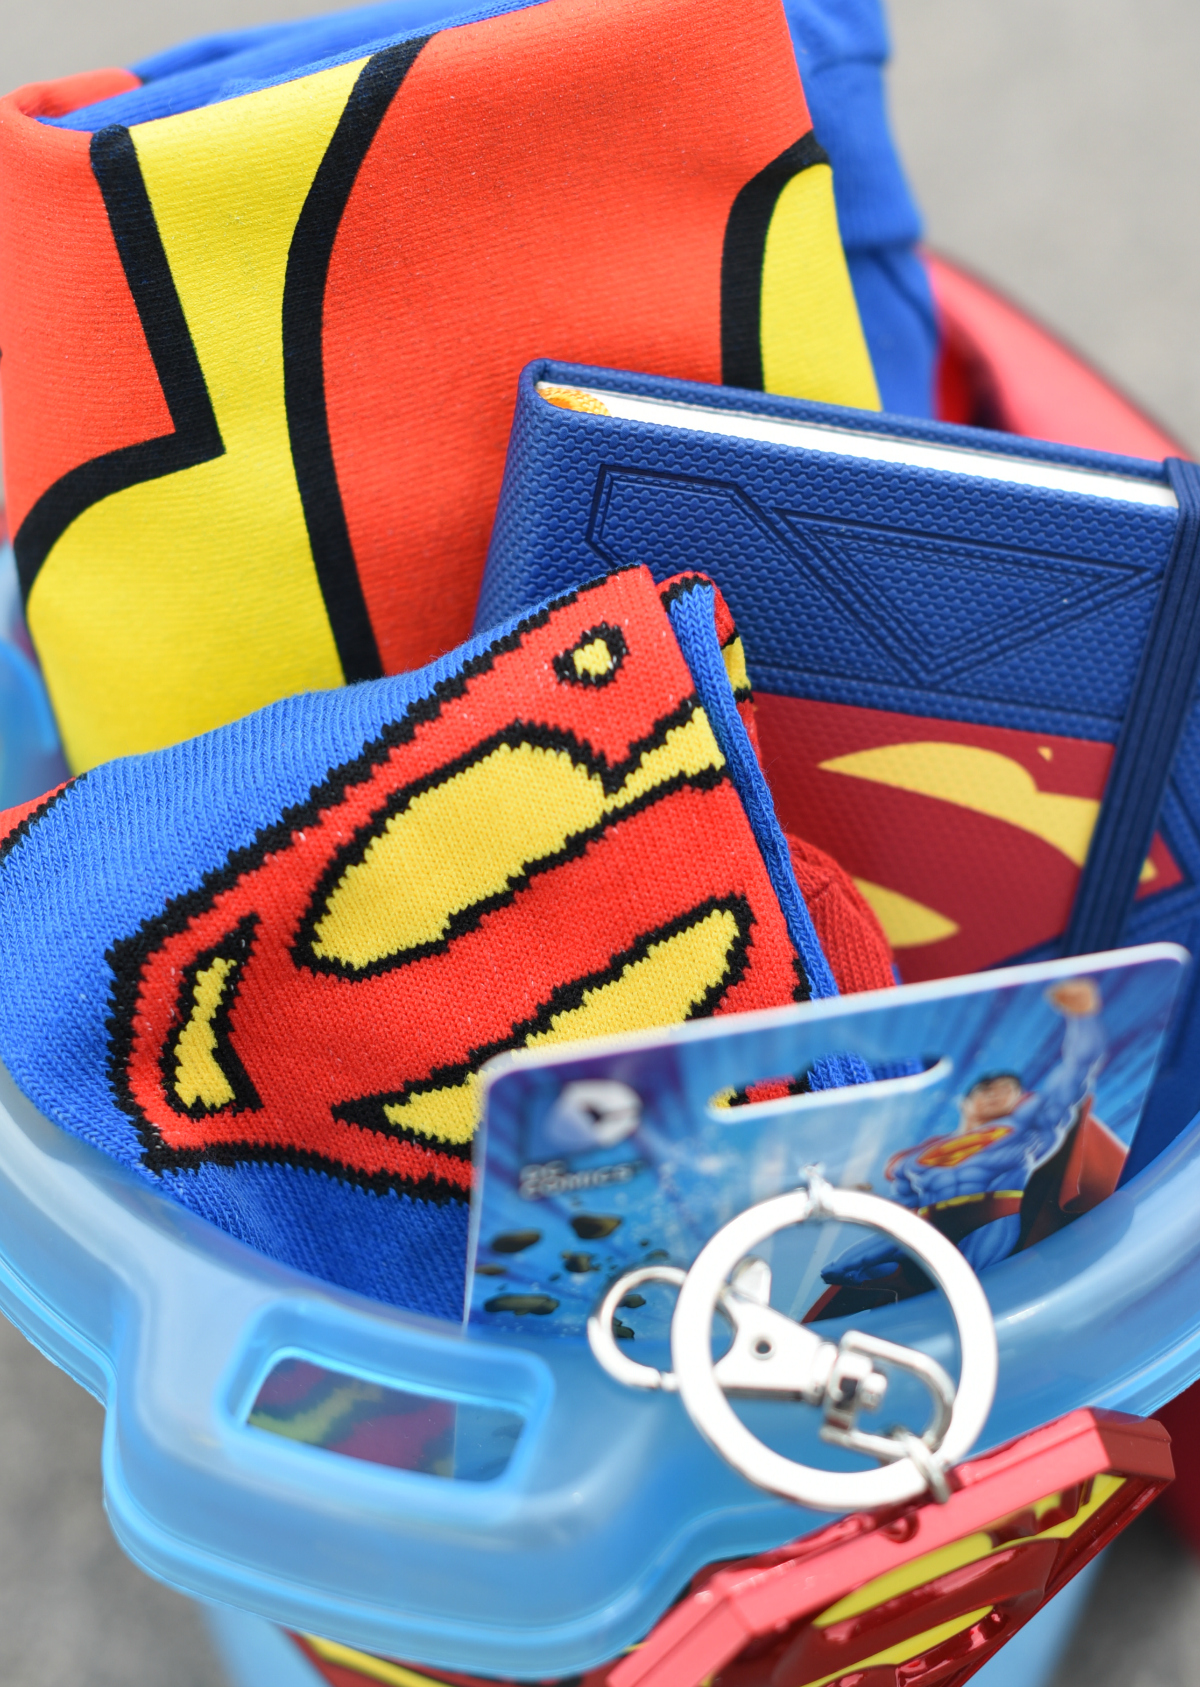 Superhero Father's Day Gift Ideas